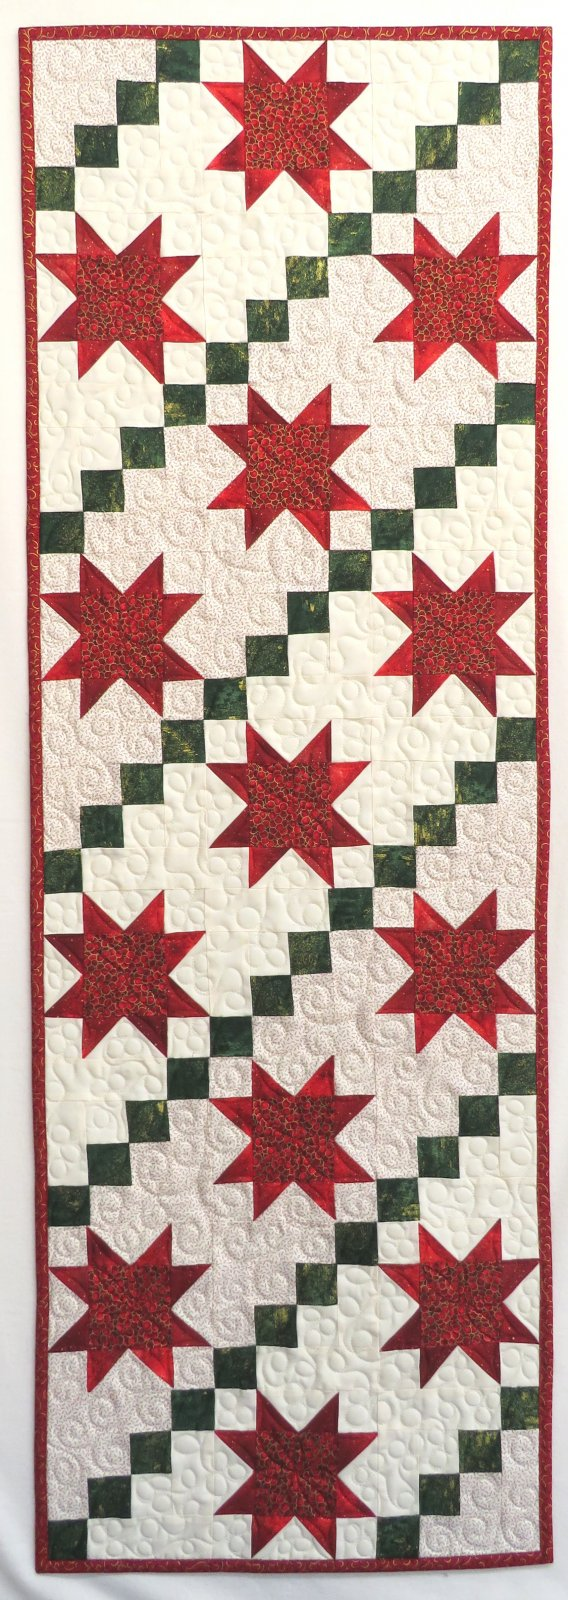 Stars & Stripes Christmas Table Runner Kit